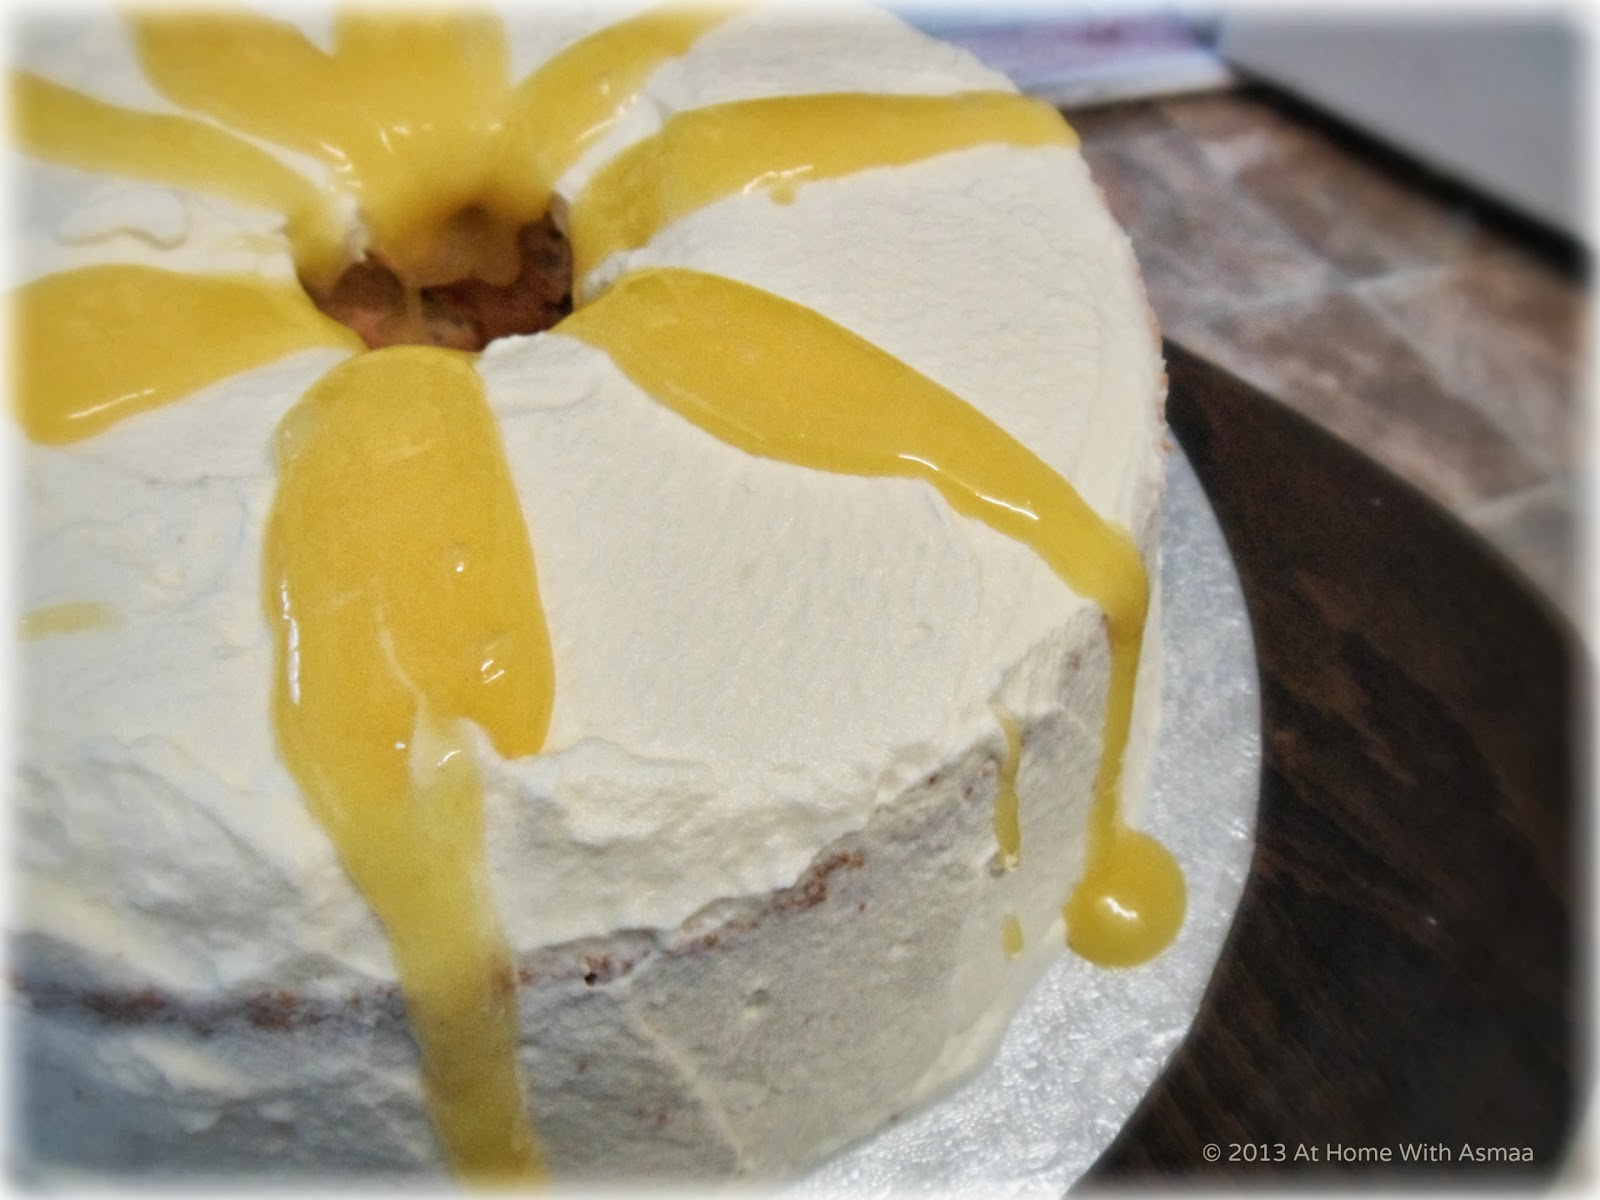 At Home With Asmaa: 'Angel' Food Cake With Lemon Curd #GBBO